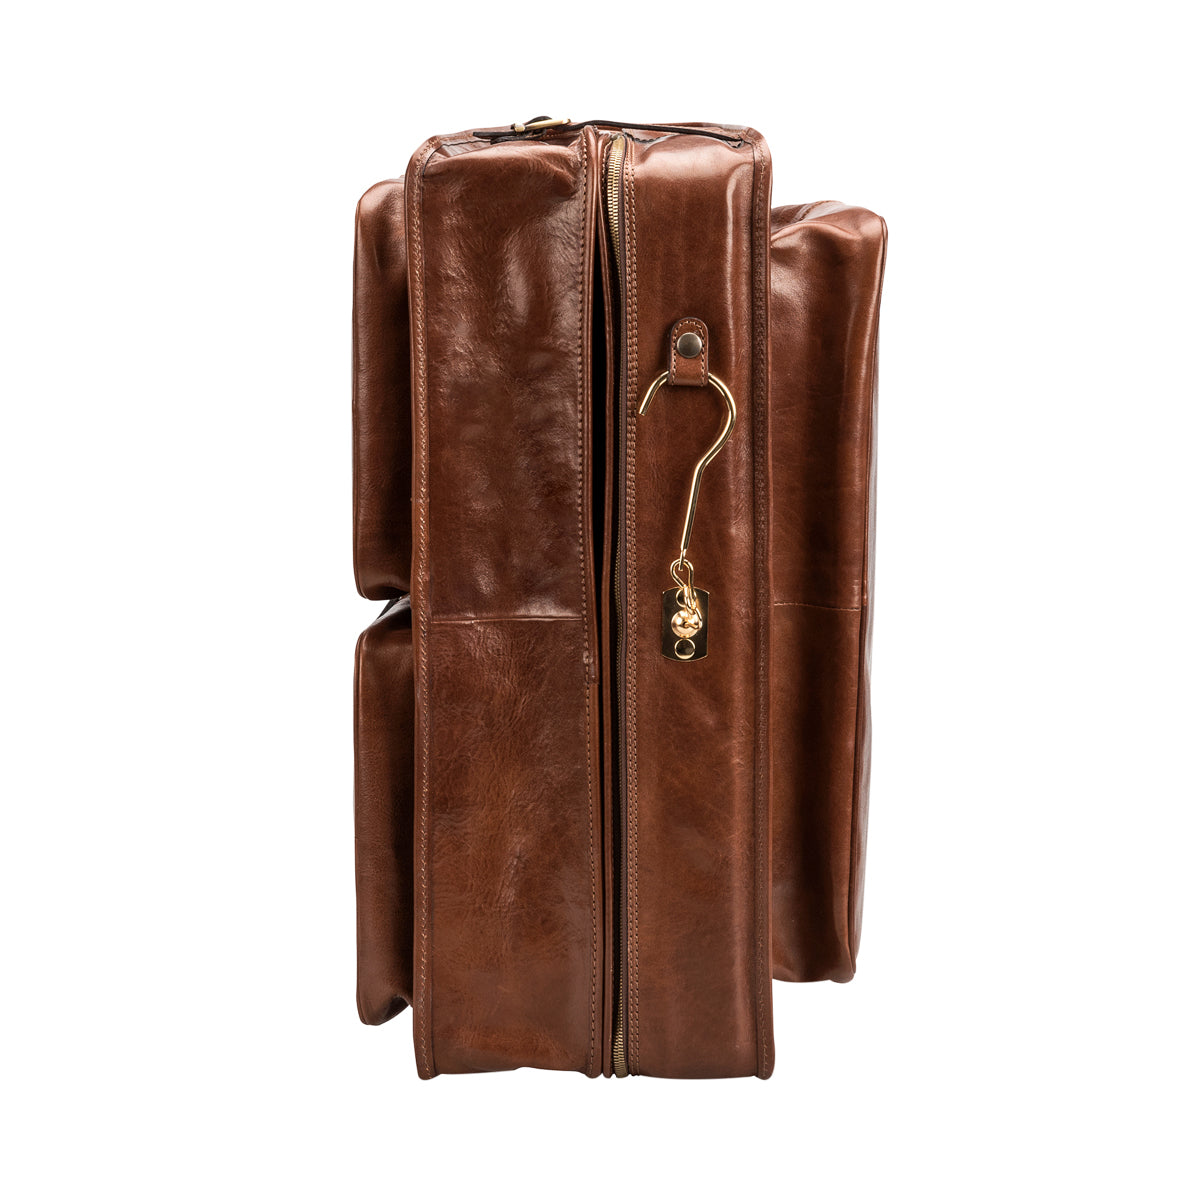 Image 4 of the 'Rovello' Chestnut Veg-Tanned Leather Suit Carrier